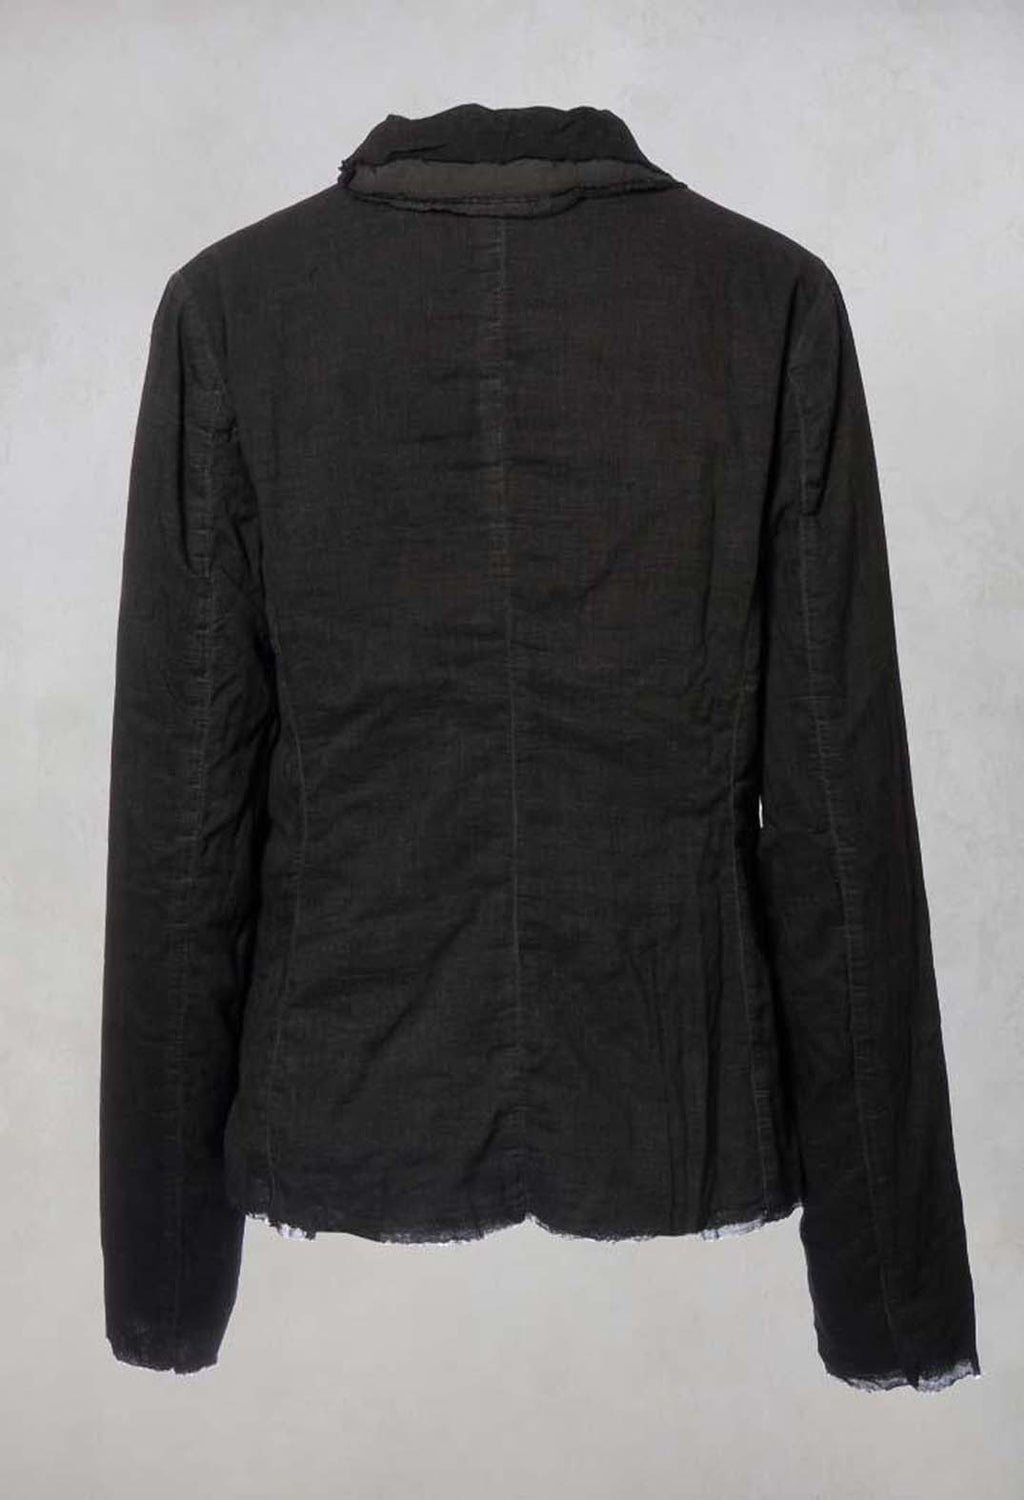 Raw Hem Jacket in Carbon